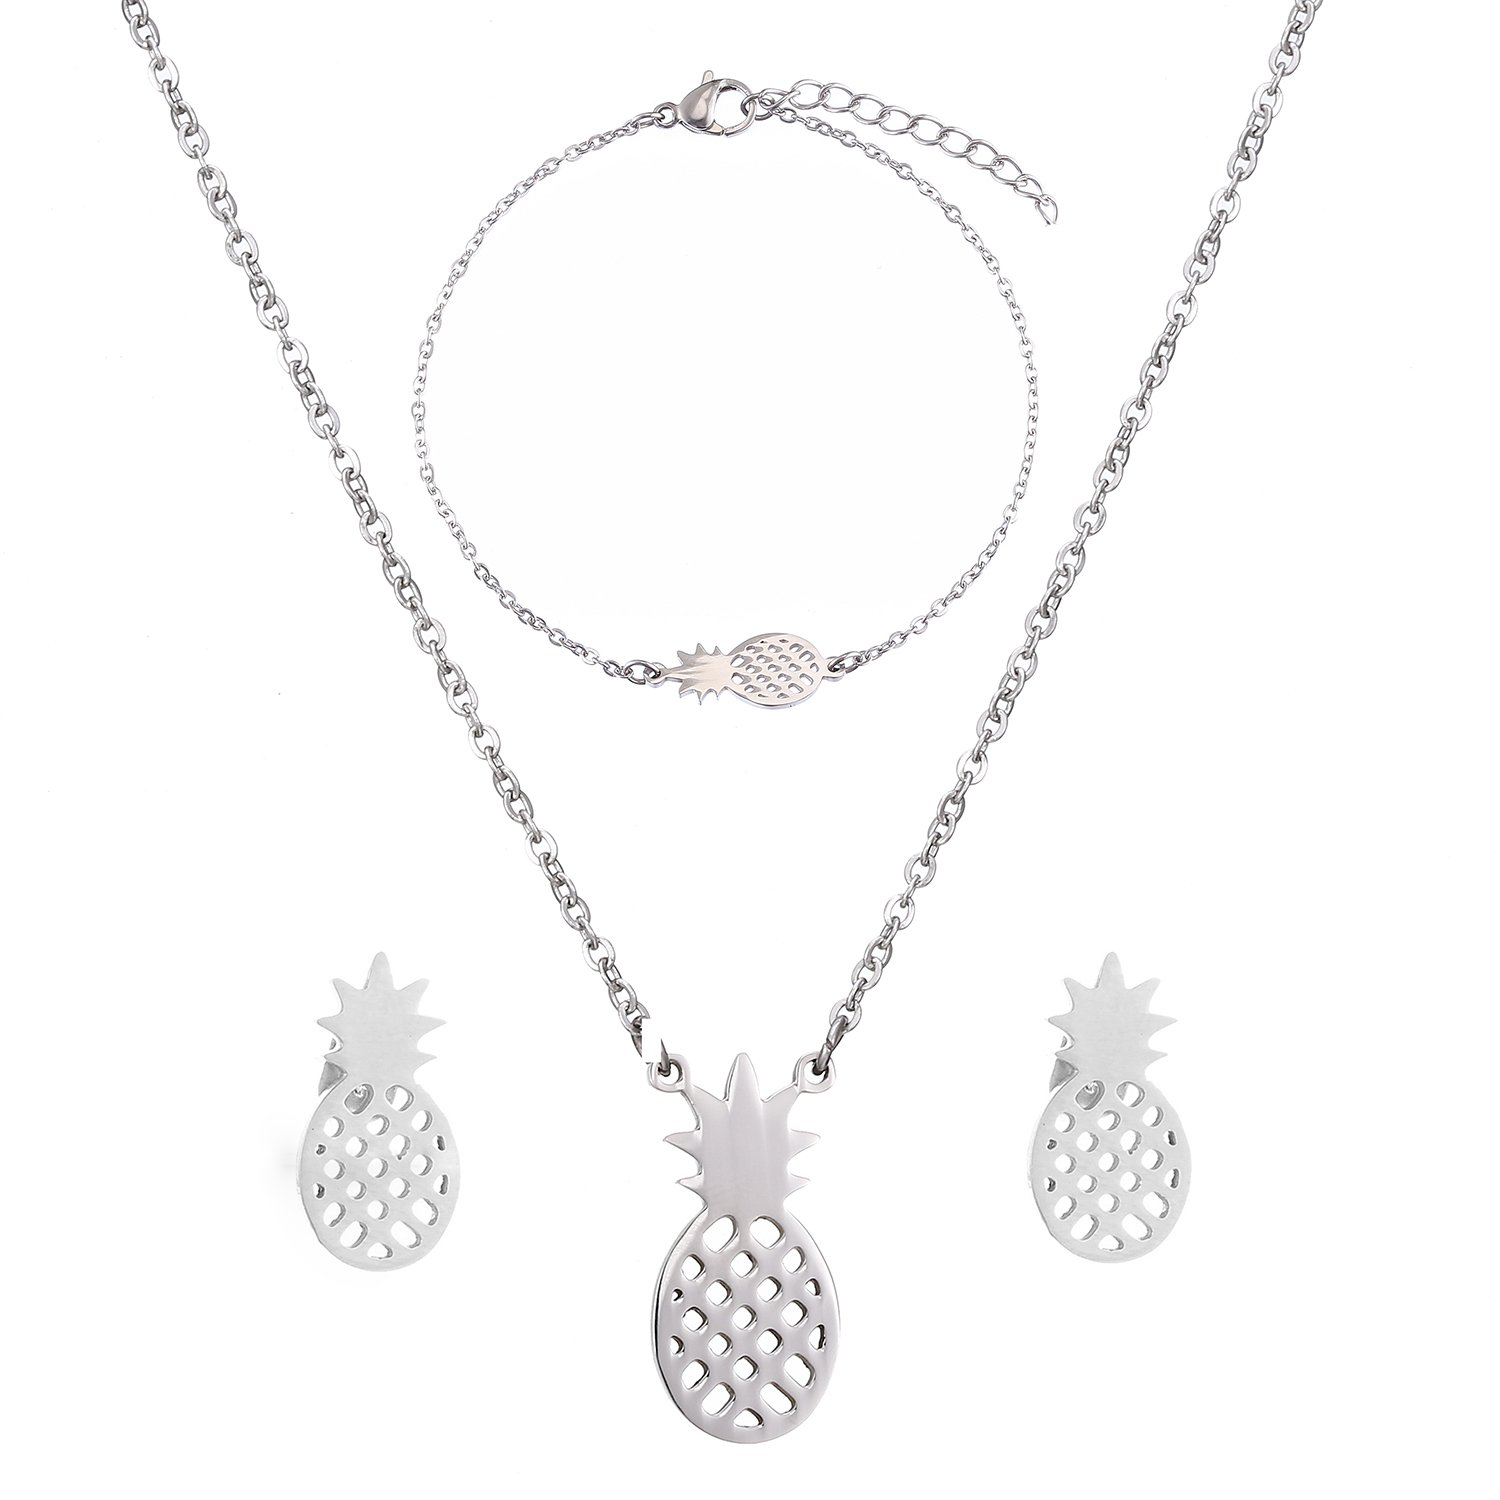 SKQIR Womens Stainless Steel Pineapple Jewelry Sets (Earrings+Bracelets+Necklaces Jewelry Set) Yiwu Suqi Jewelry Co. Ltd SKQIR-1709 Gold Set